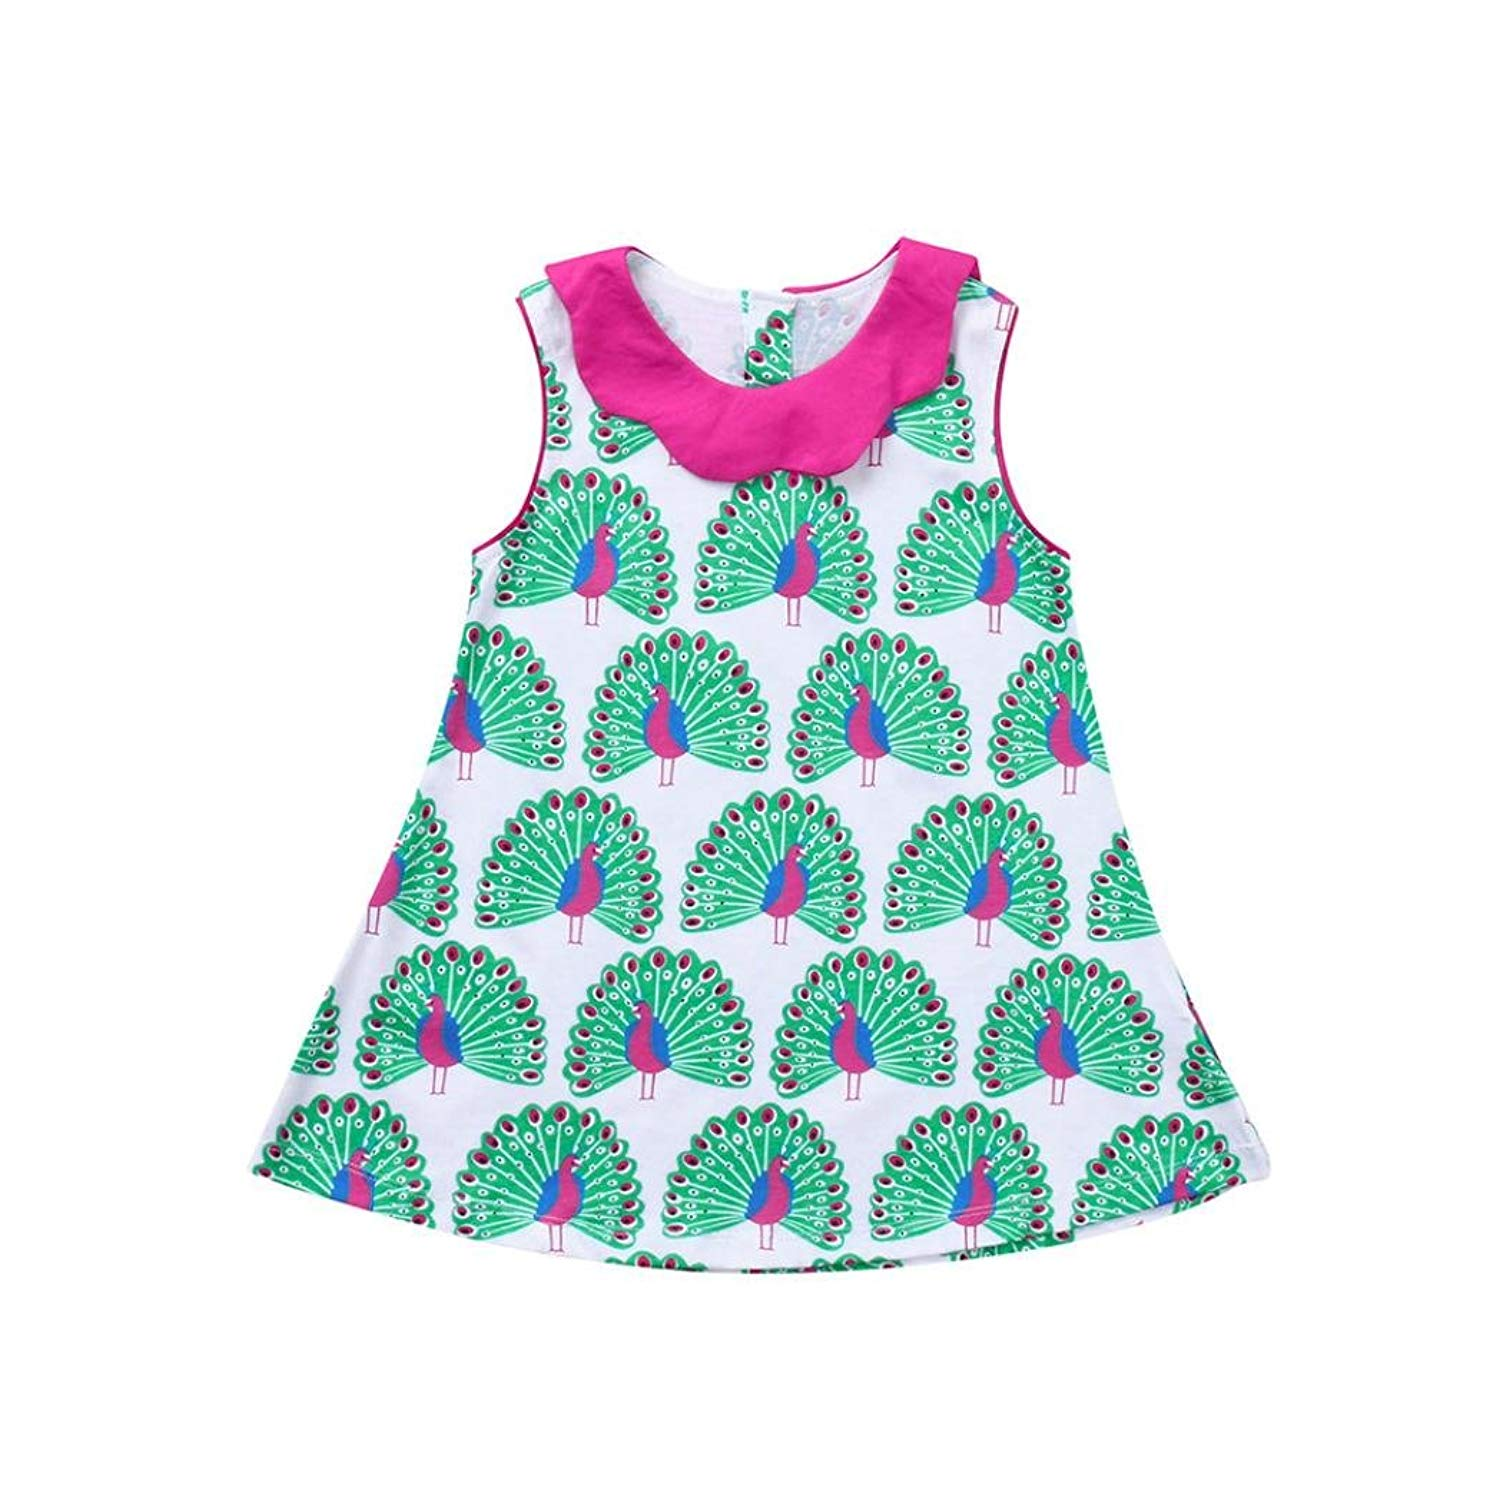 ba3019eee088 Winsummer Kids Girls Summer Dress Sleeveless Peacock Dresses Princess Party  Clothing Playwear Toddler Sundress